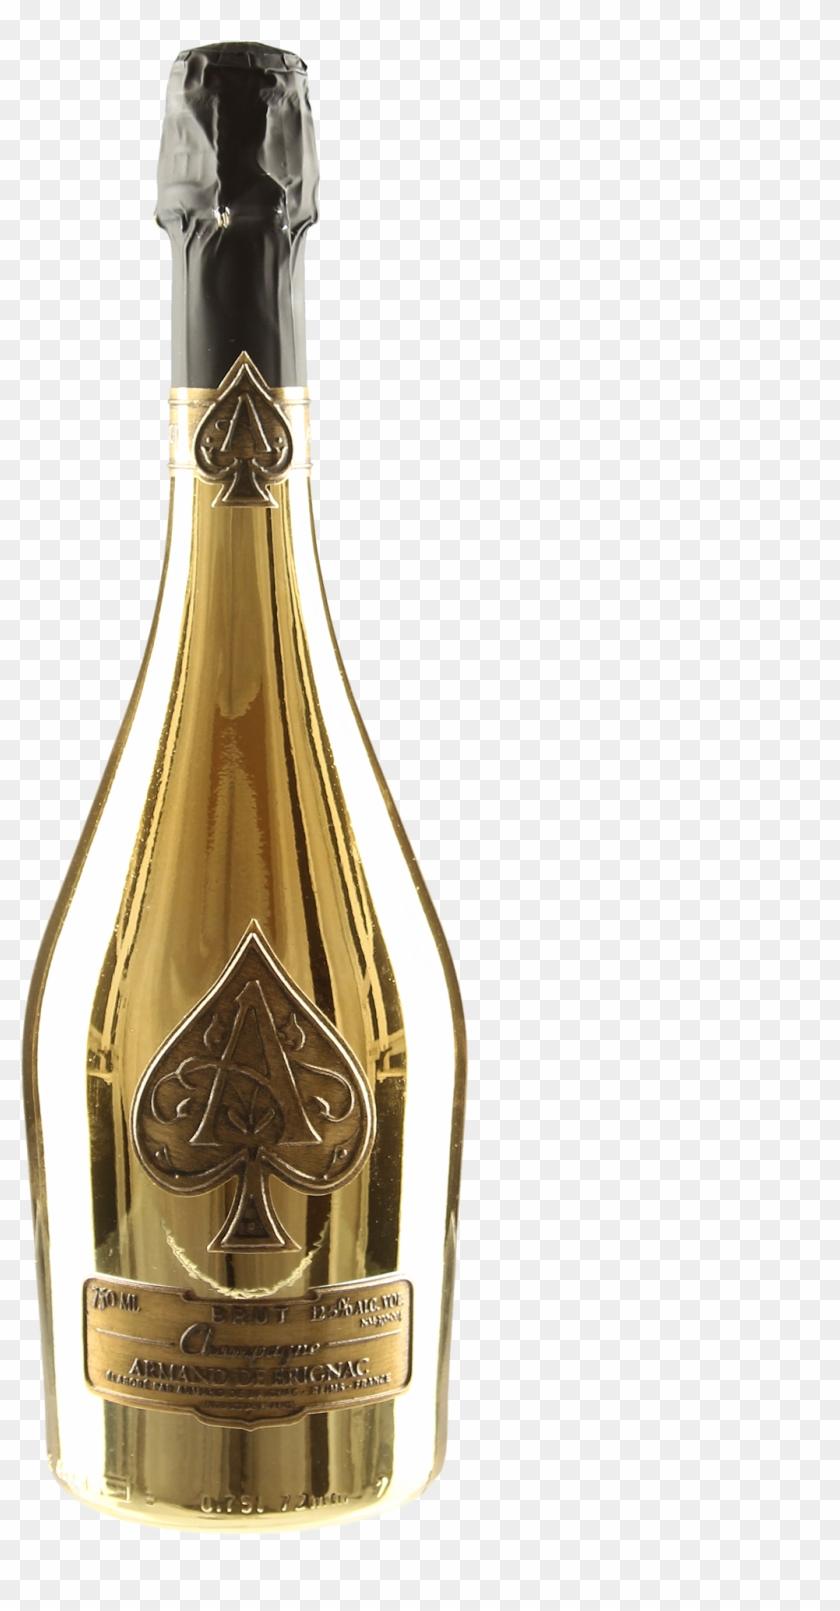 Ace Of Spade Bottle Png - Gold Ace Of Spades Png, Transparent Png ... png black and white library